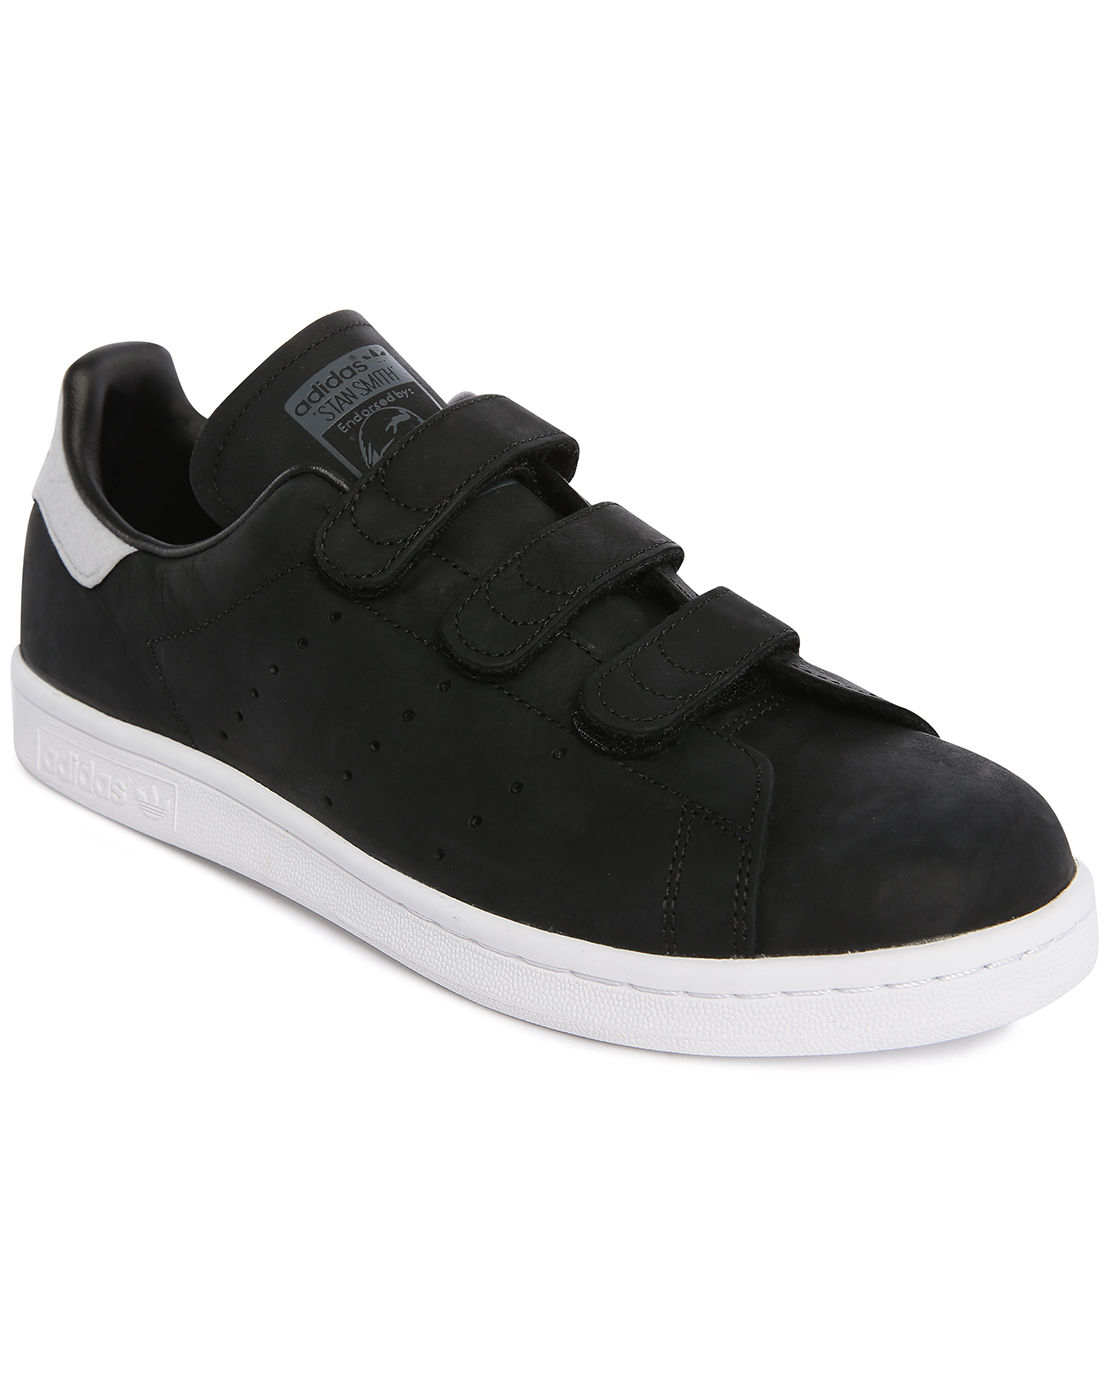 mens adidas stan smith leather velcro. Black Bedroom Furniture Sets. Home Design Ideas